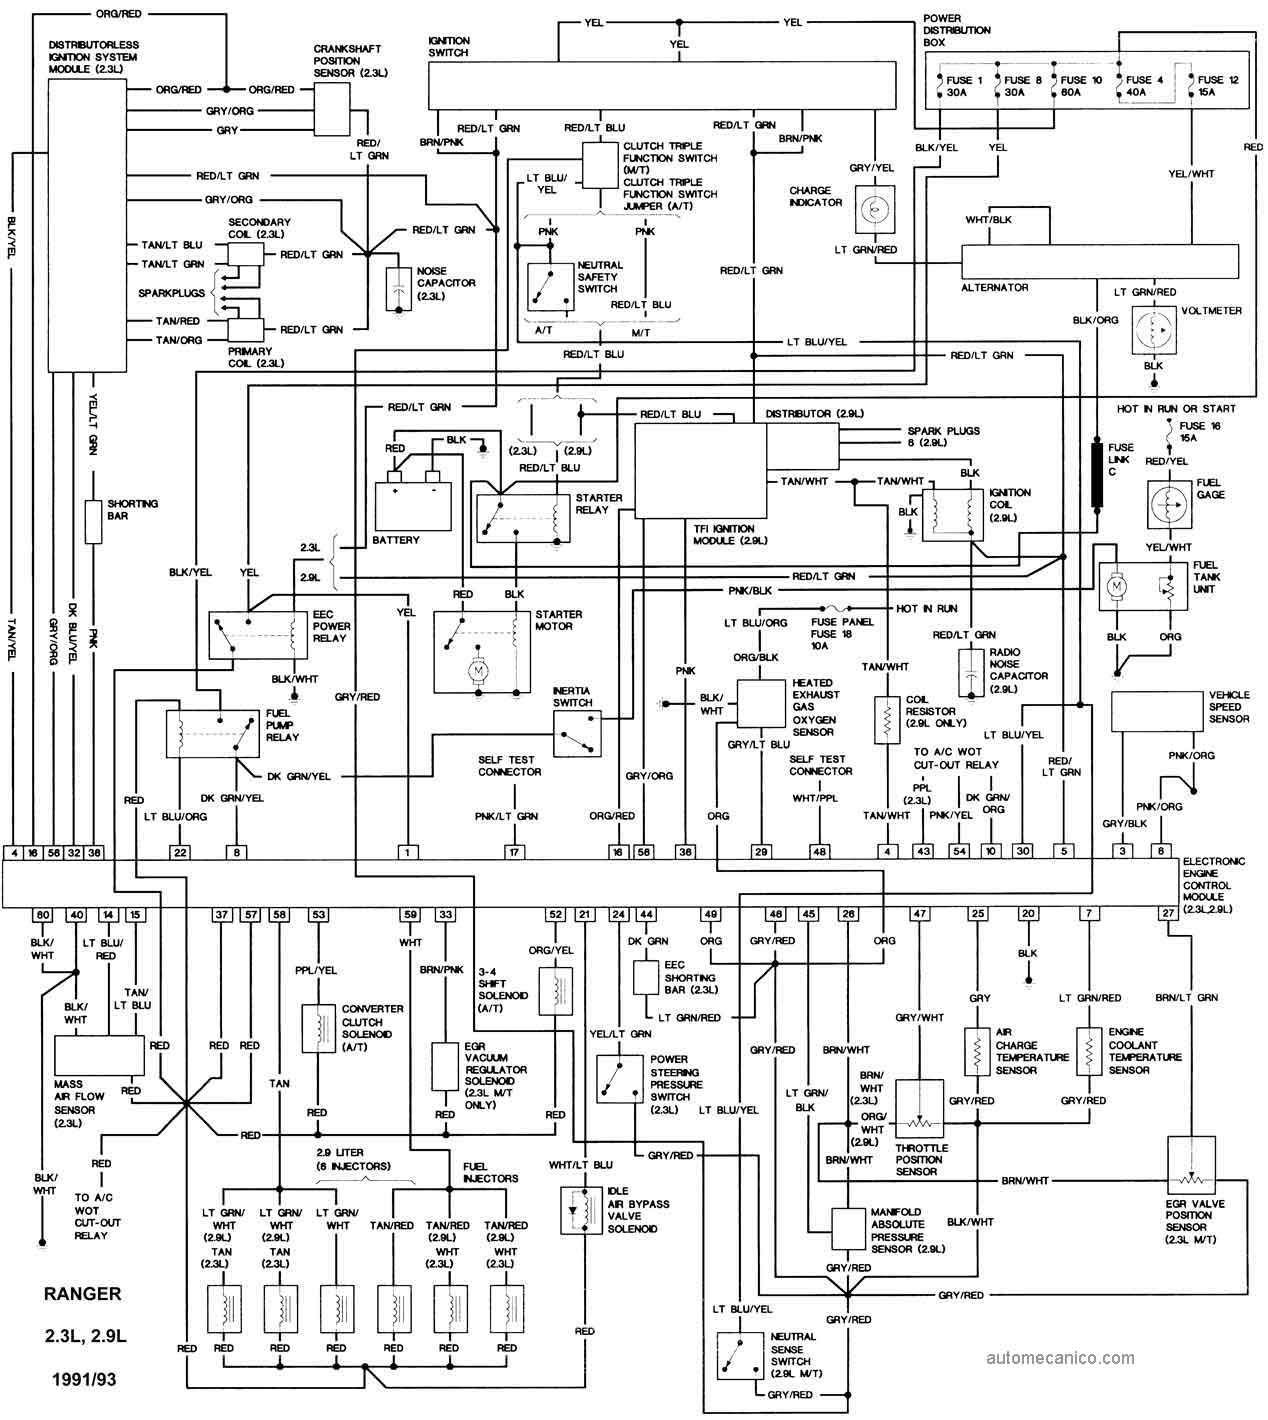 1985 Ford Bronco Wiring Diagram Will Be A Thing Fuse Box Ranger Esquemas Diagramas Graphics 85